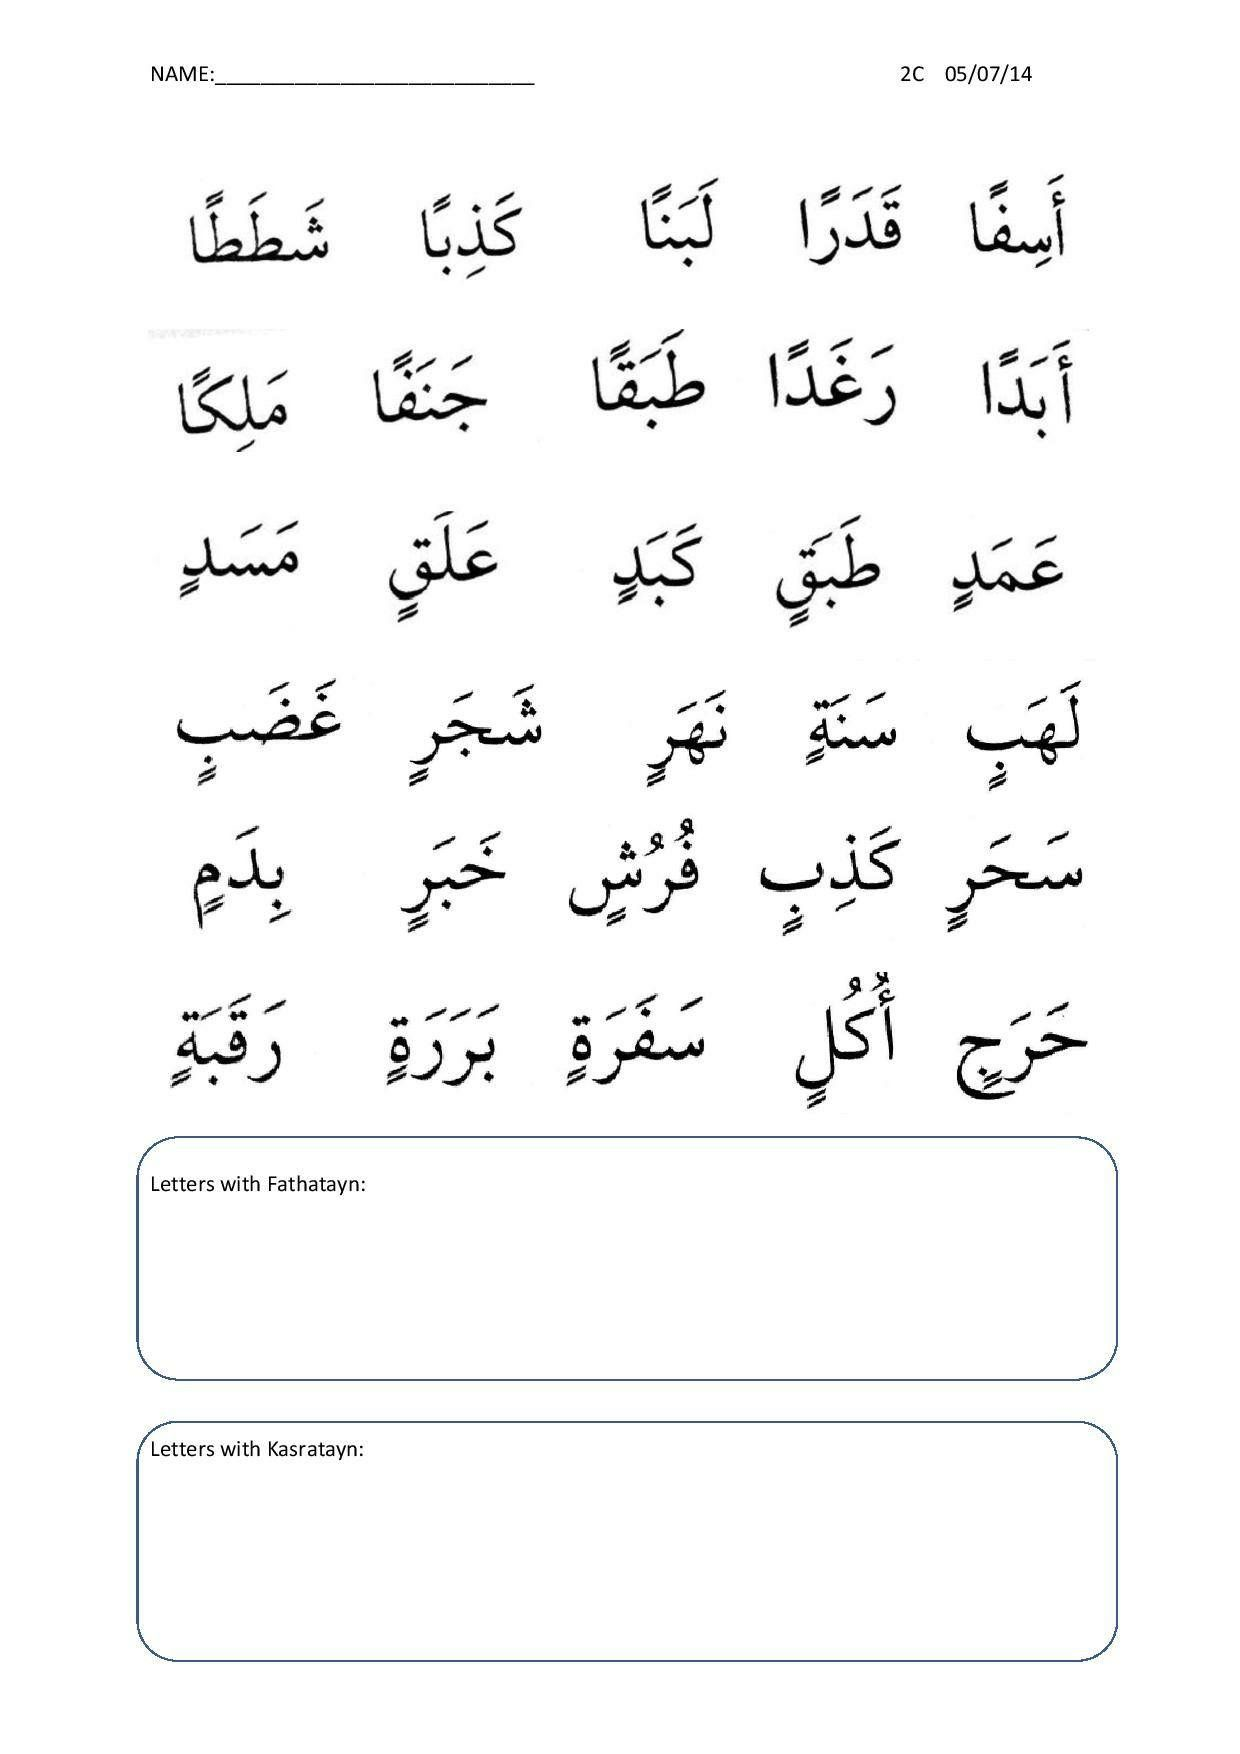 Fathatain And Kasratain Reading And Recognition Practice